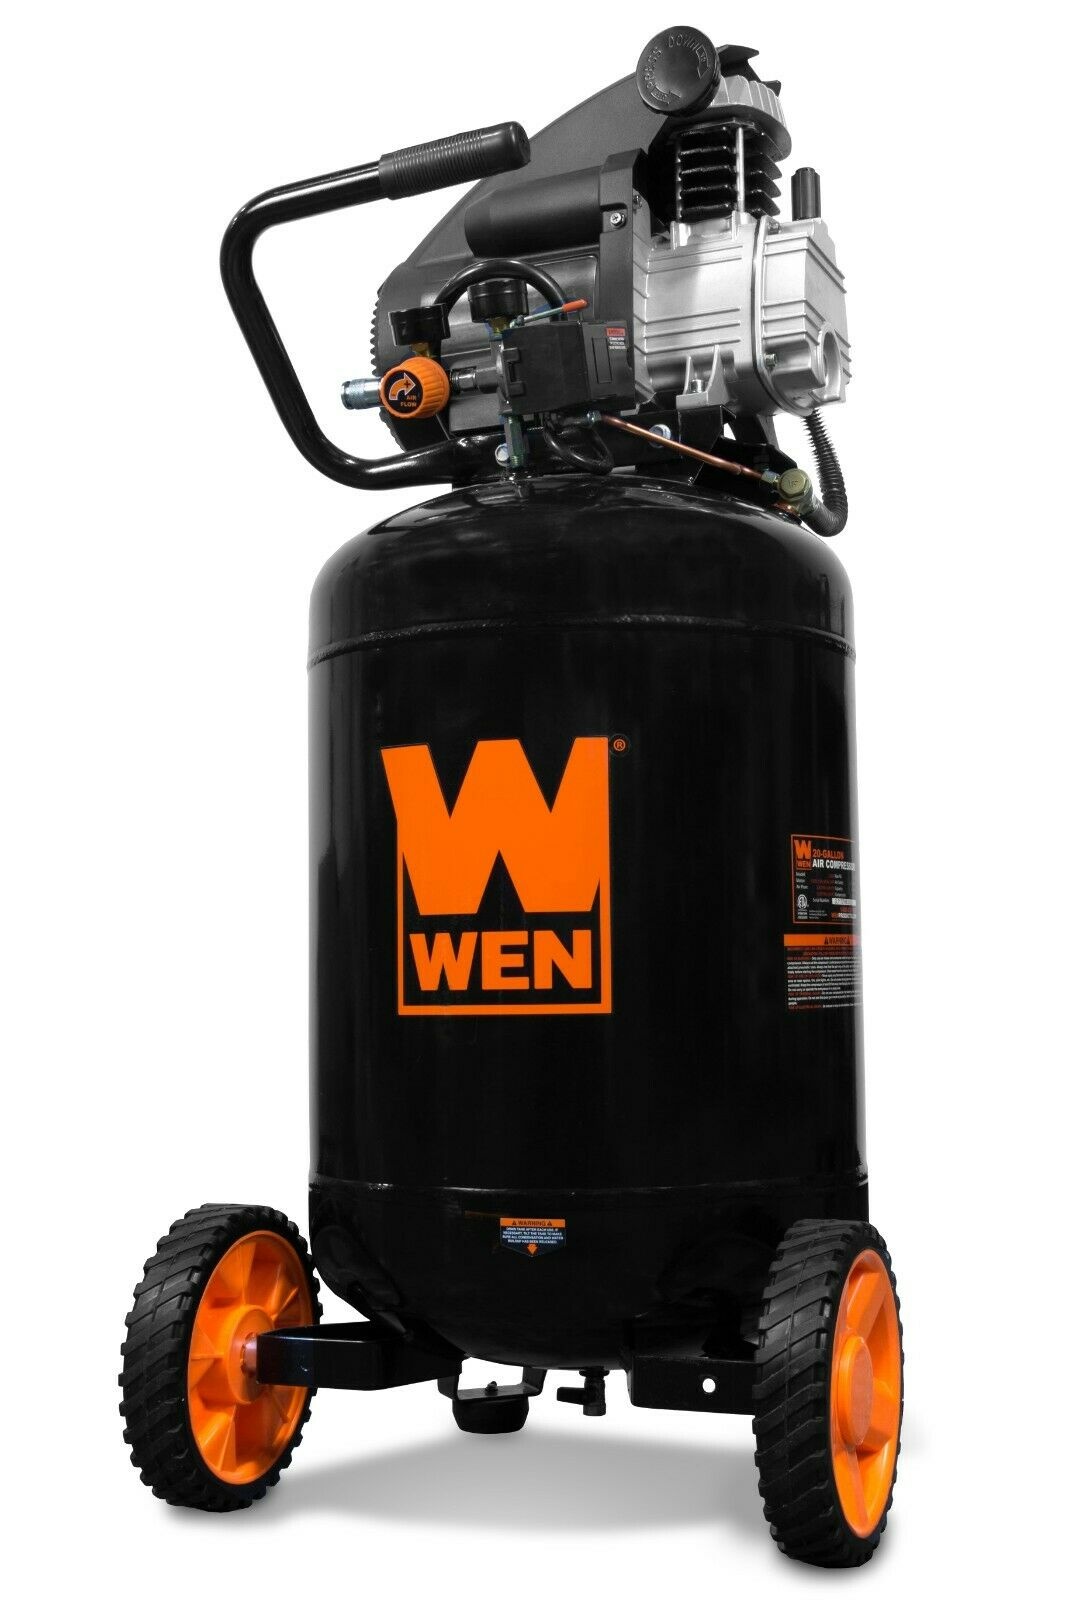 wen_products WEN 2202T 15A 20-Gallon Oil-Lubricated Portable Vertical Electric Air Compressor